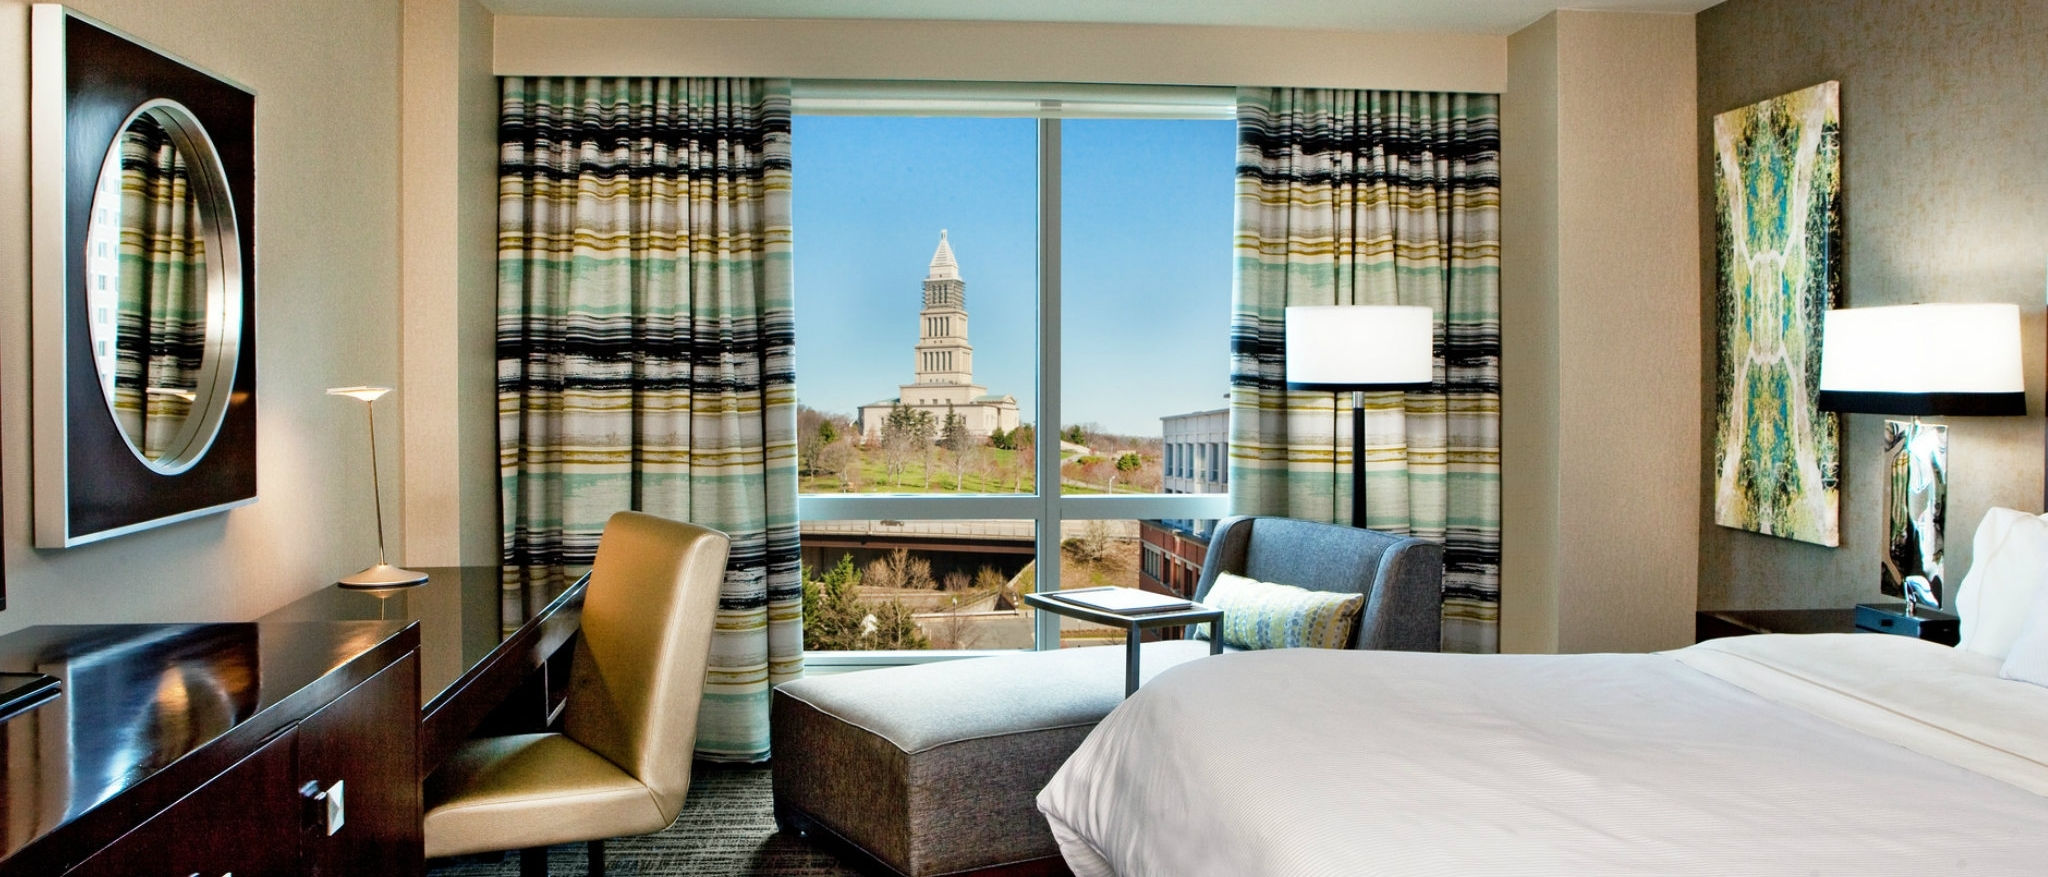 The Westin Alexandria - Renovated king guest room with a view